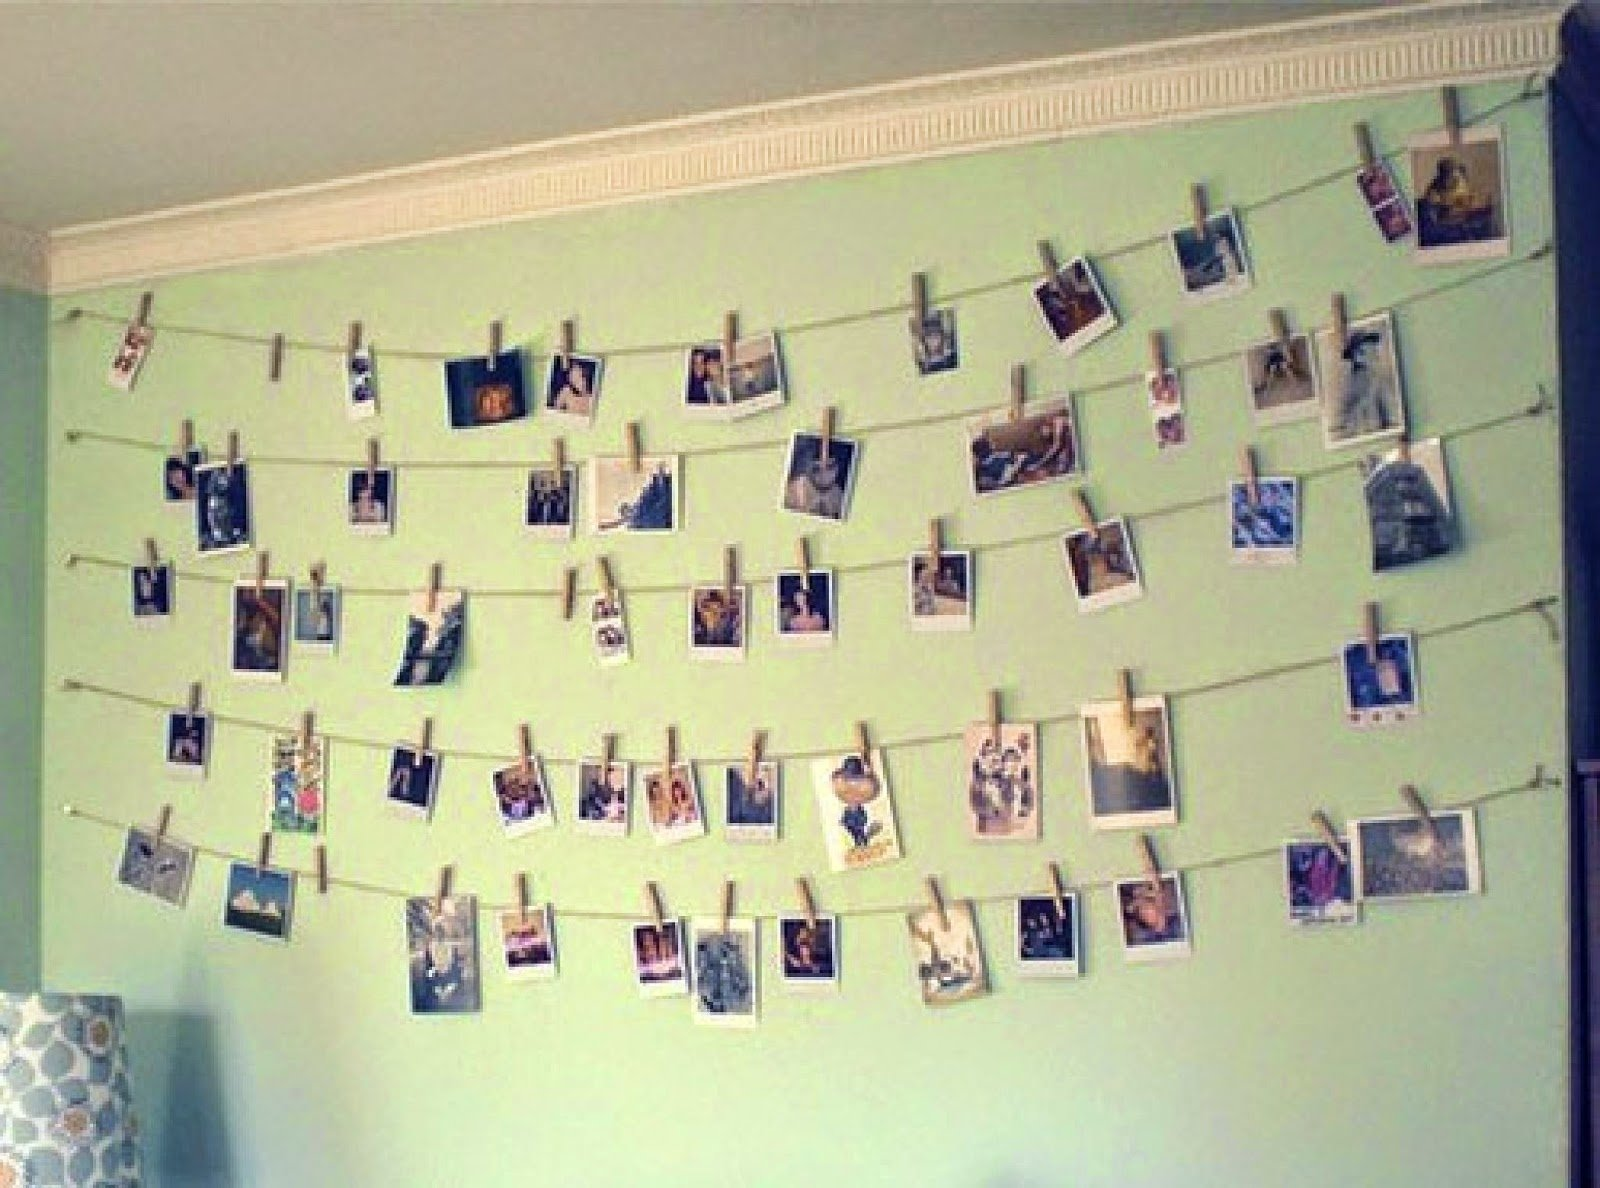 10 Unique Hanging Pictures On Wall Ideas 17 hanging pictures on wall ideas and how to hang pictures on a wall 1 2020